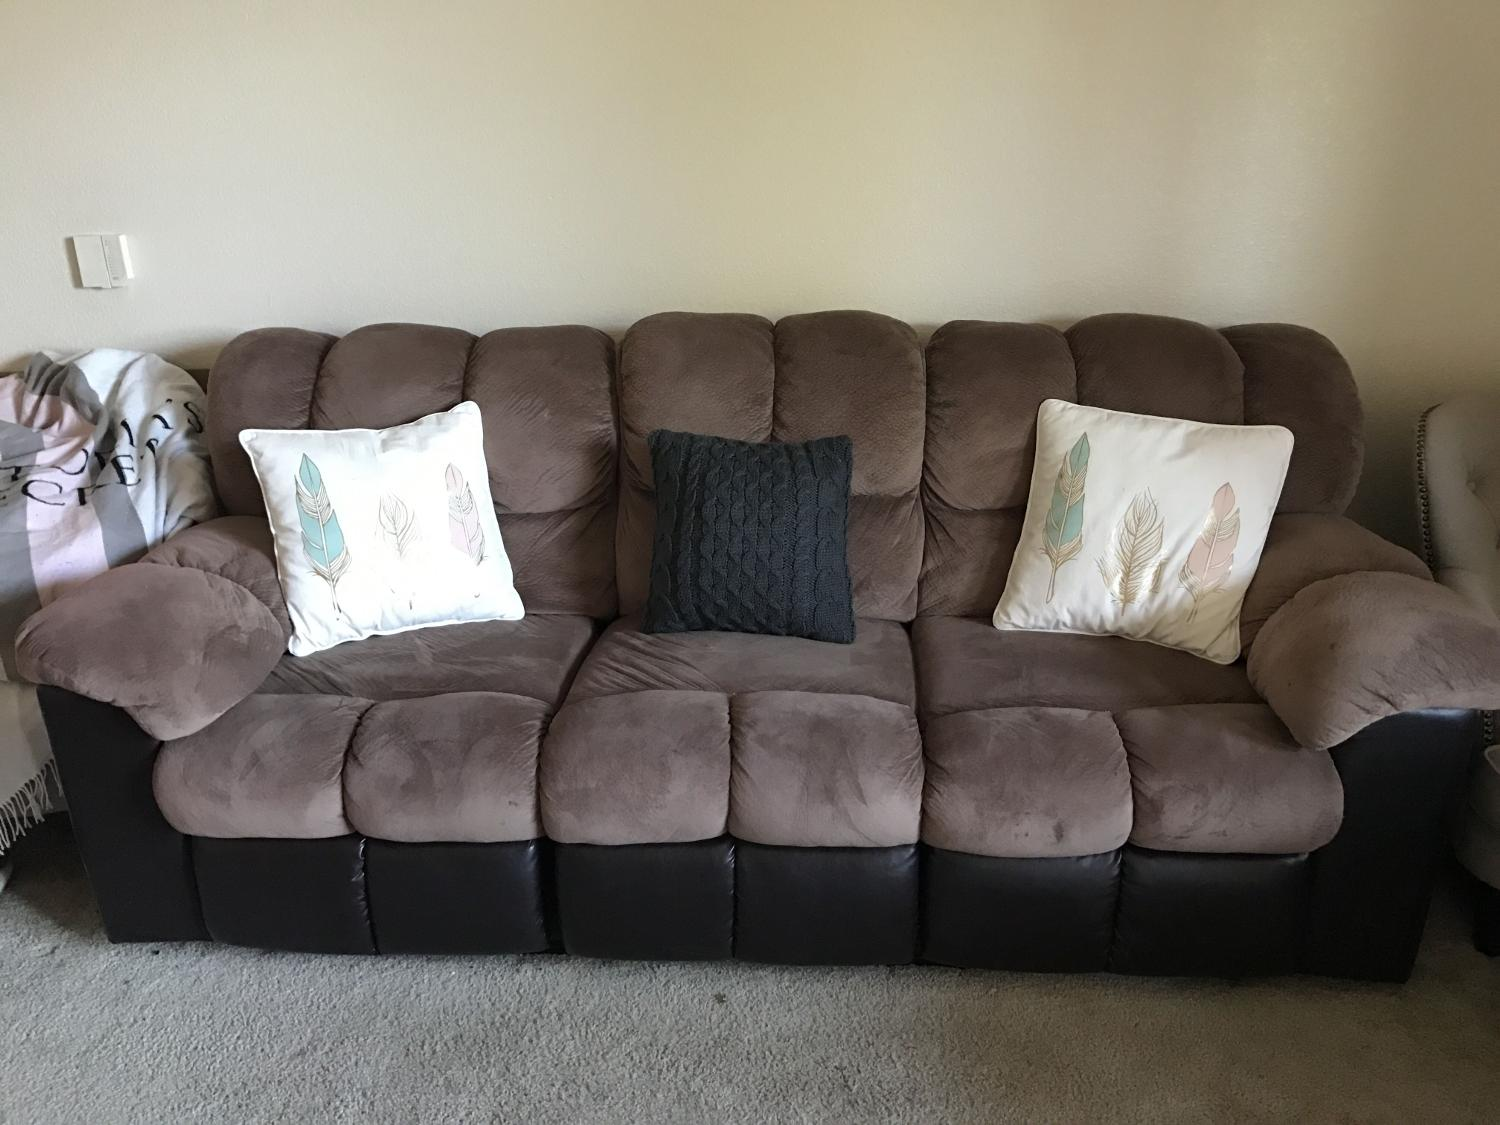 Best Super Comfy Couch For Sale In Menifee California For 2017